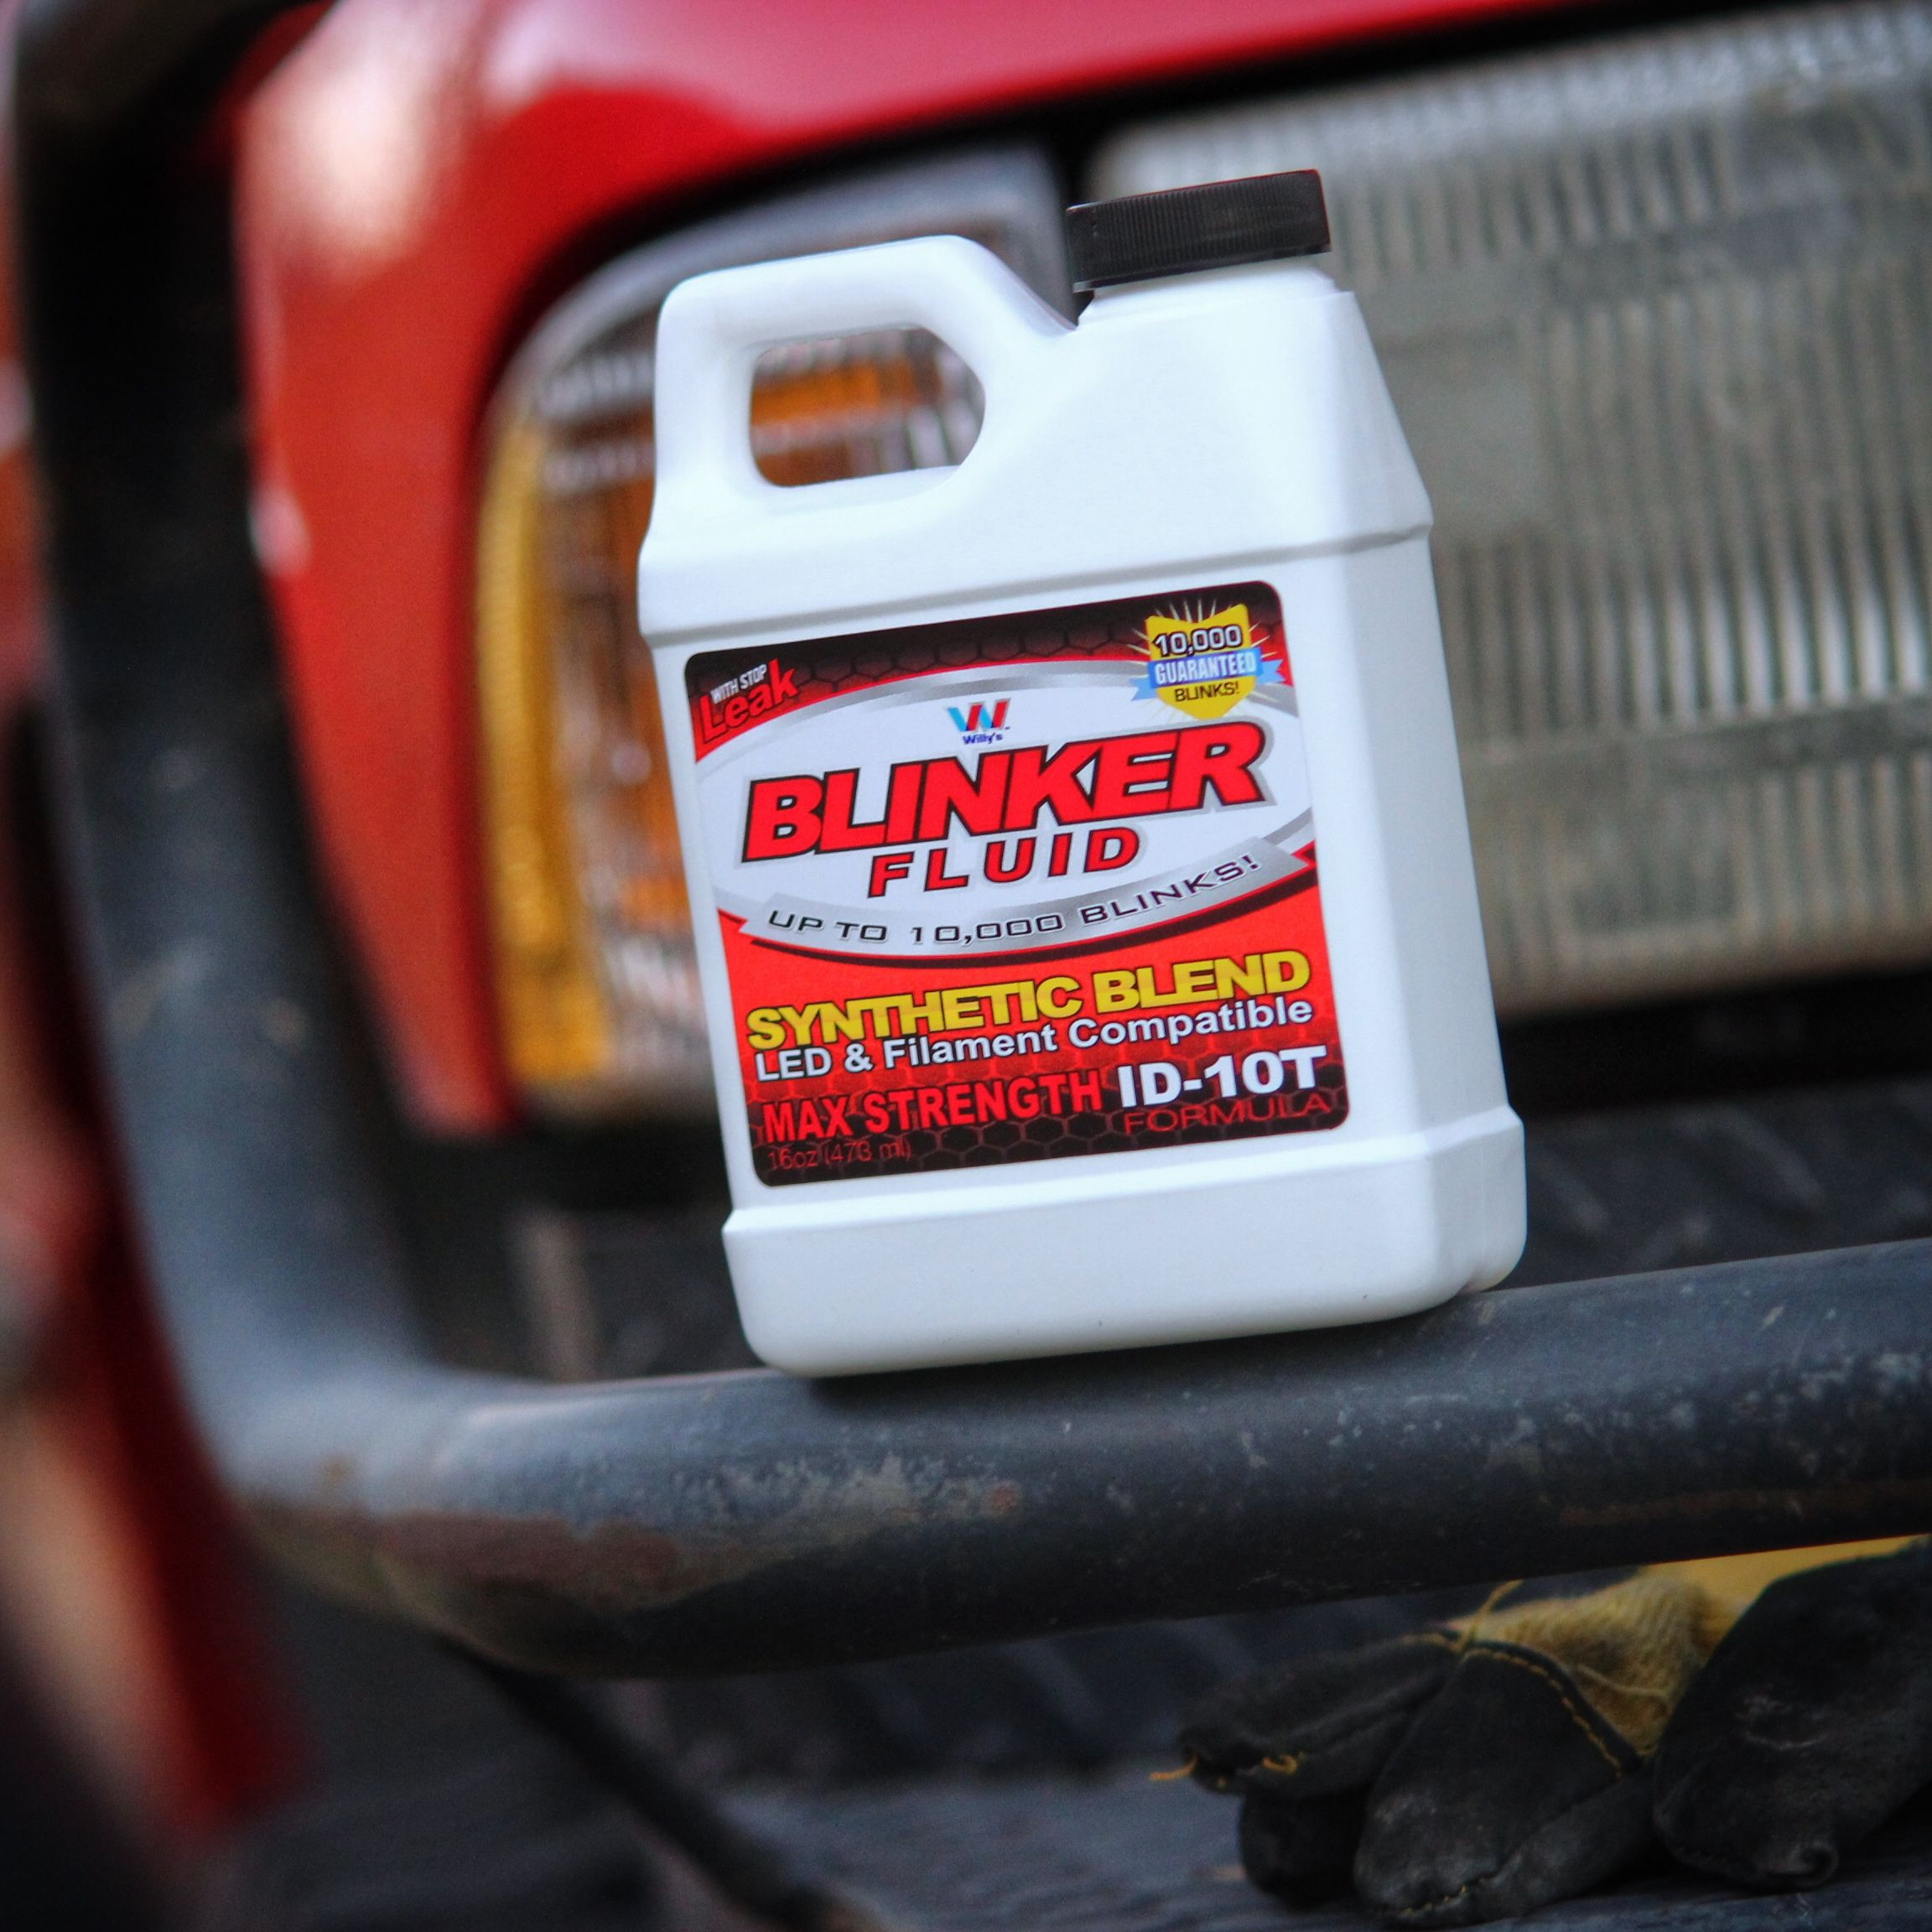 Check your blinker fluid hot weather takes its toll on blinker fluid get yours